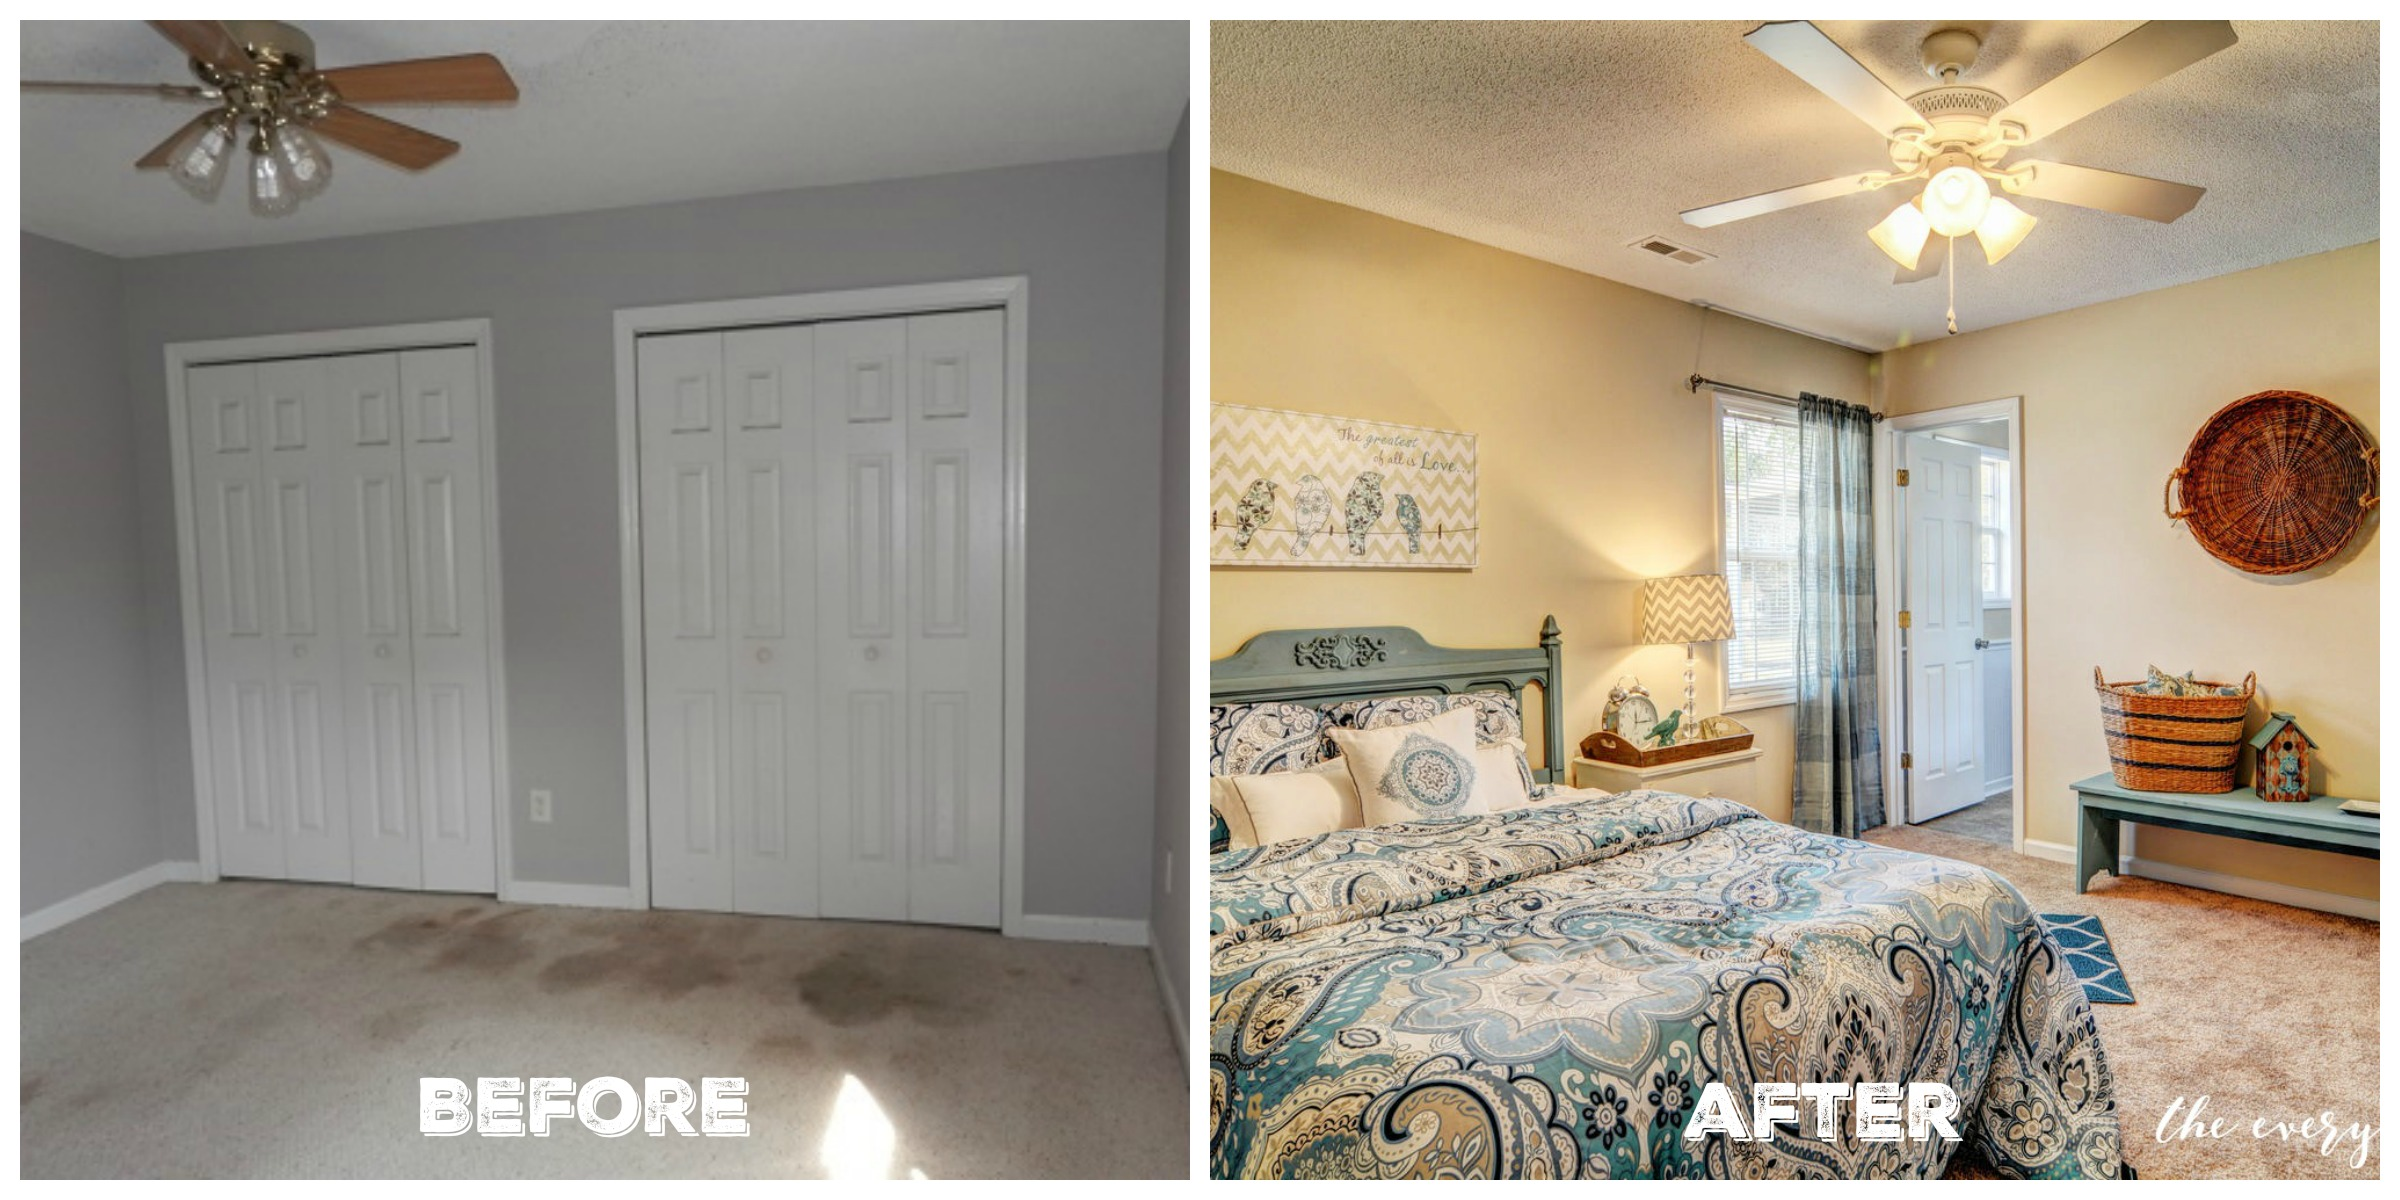 Before & After Master Bedroom | Flip House Reveal | The Everyday Home